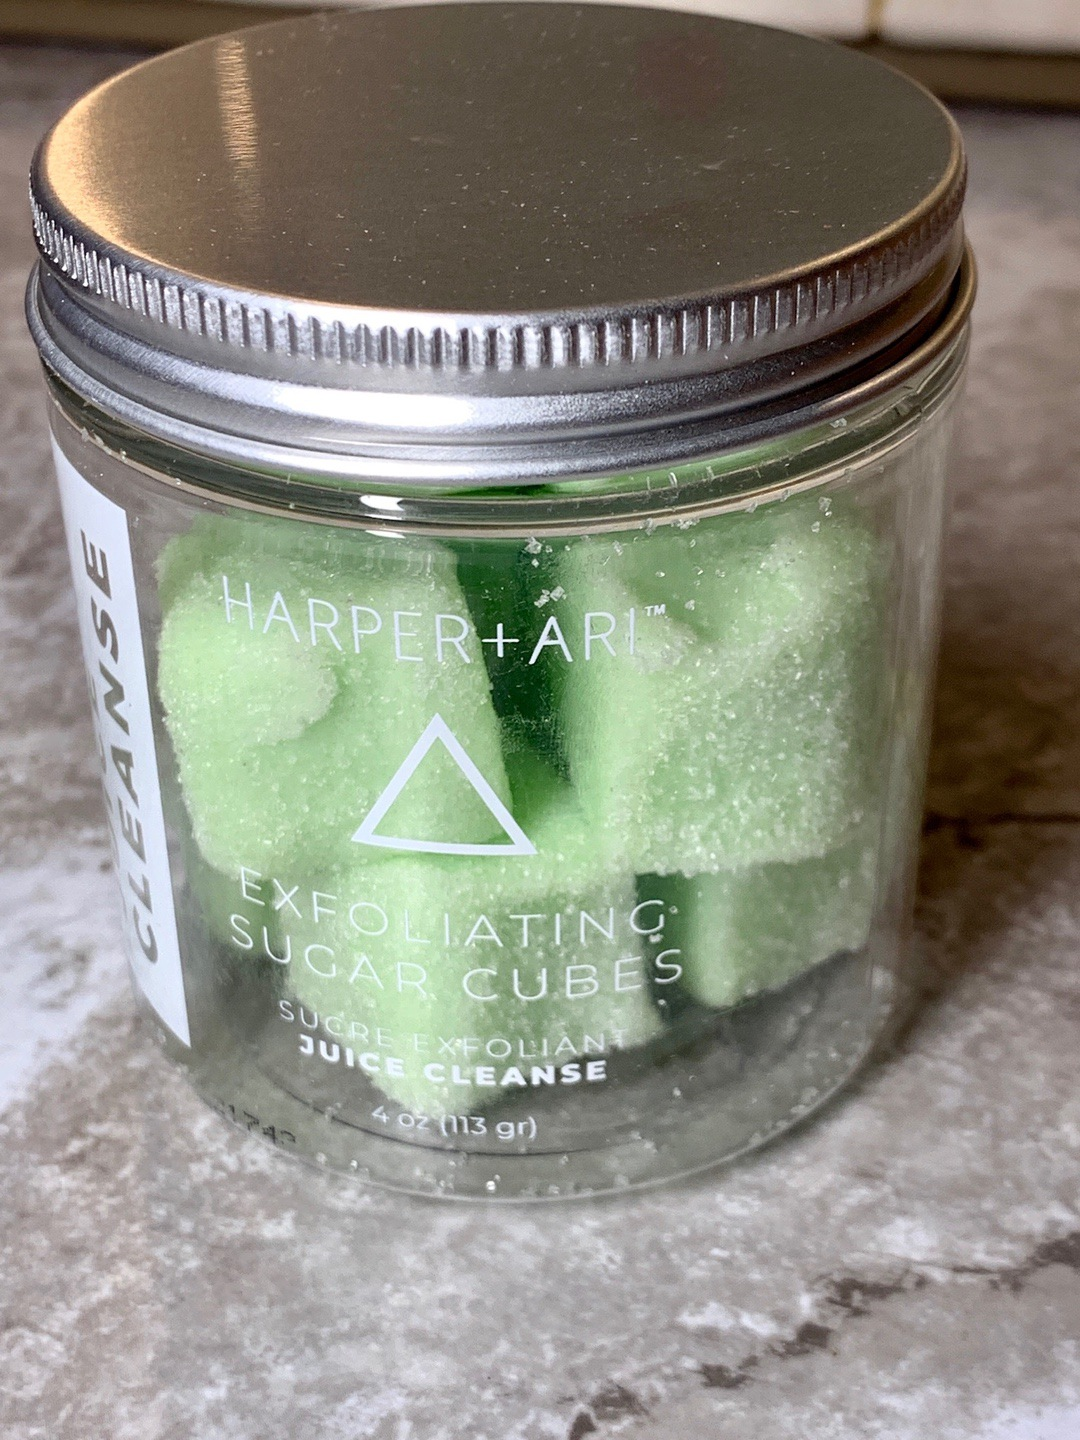 FabFitFun Fall 2019 - Harper + ARI Exfoliating Sugar Cubes in Juice Cleanse